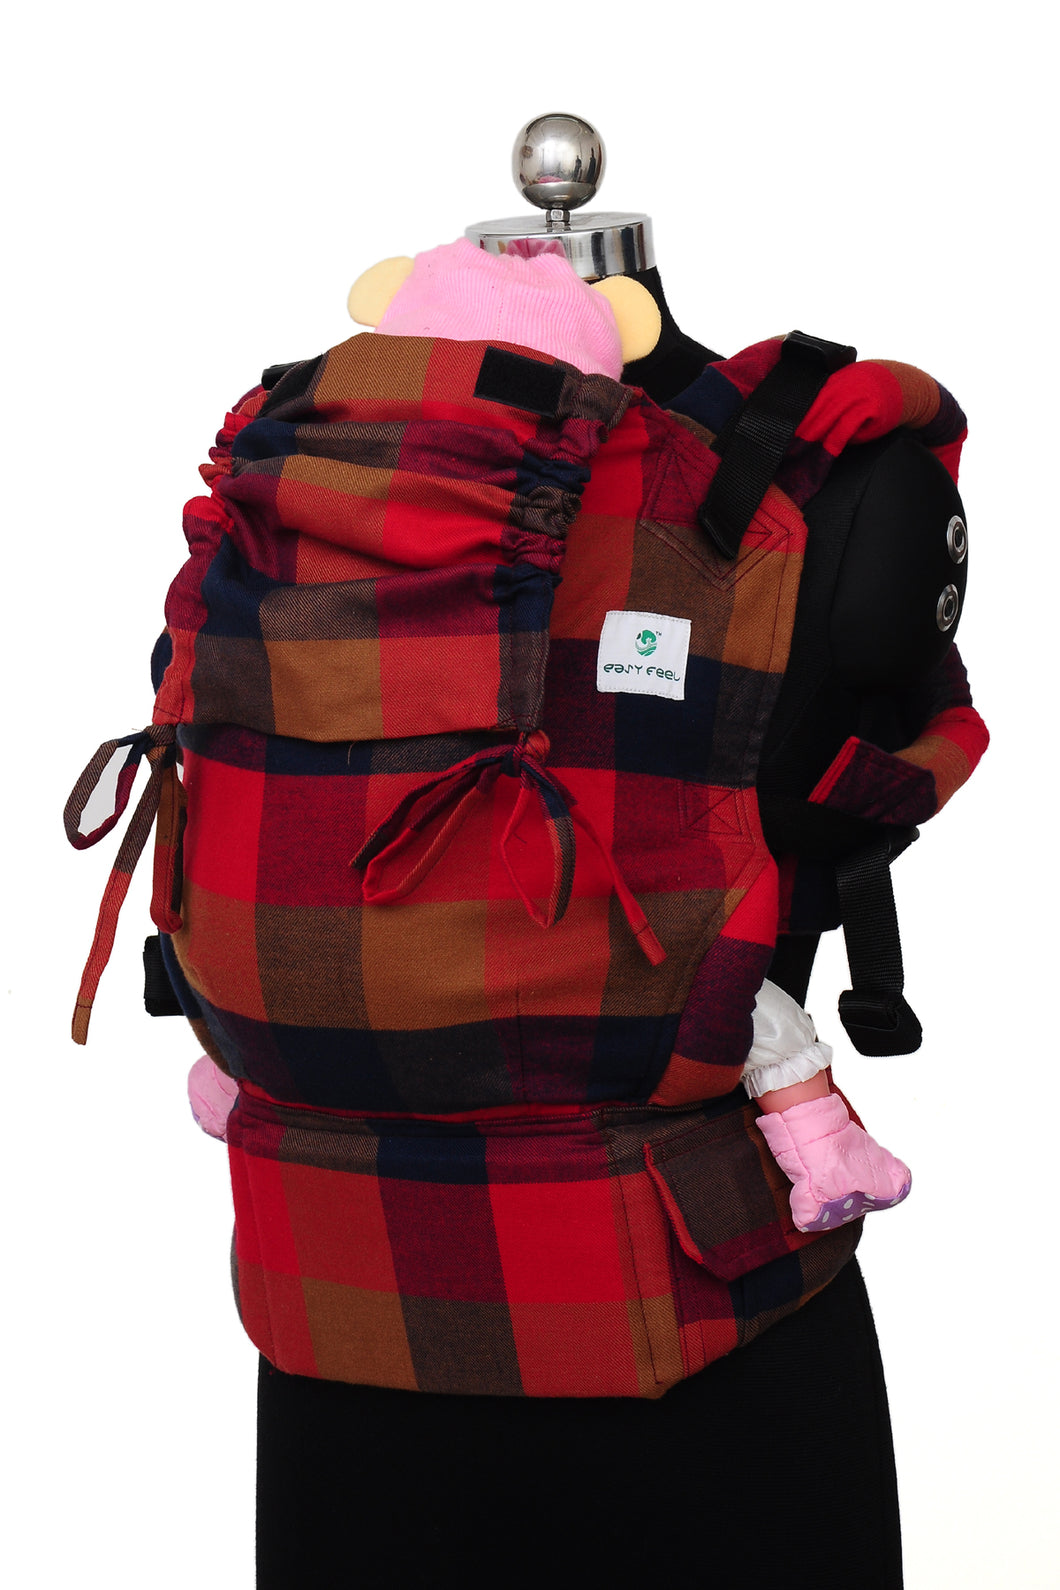 Toddler Soft Structured Carrier - Allure